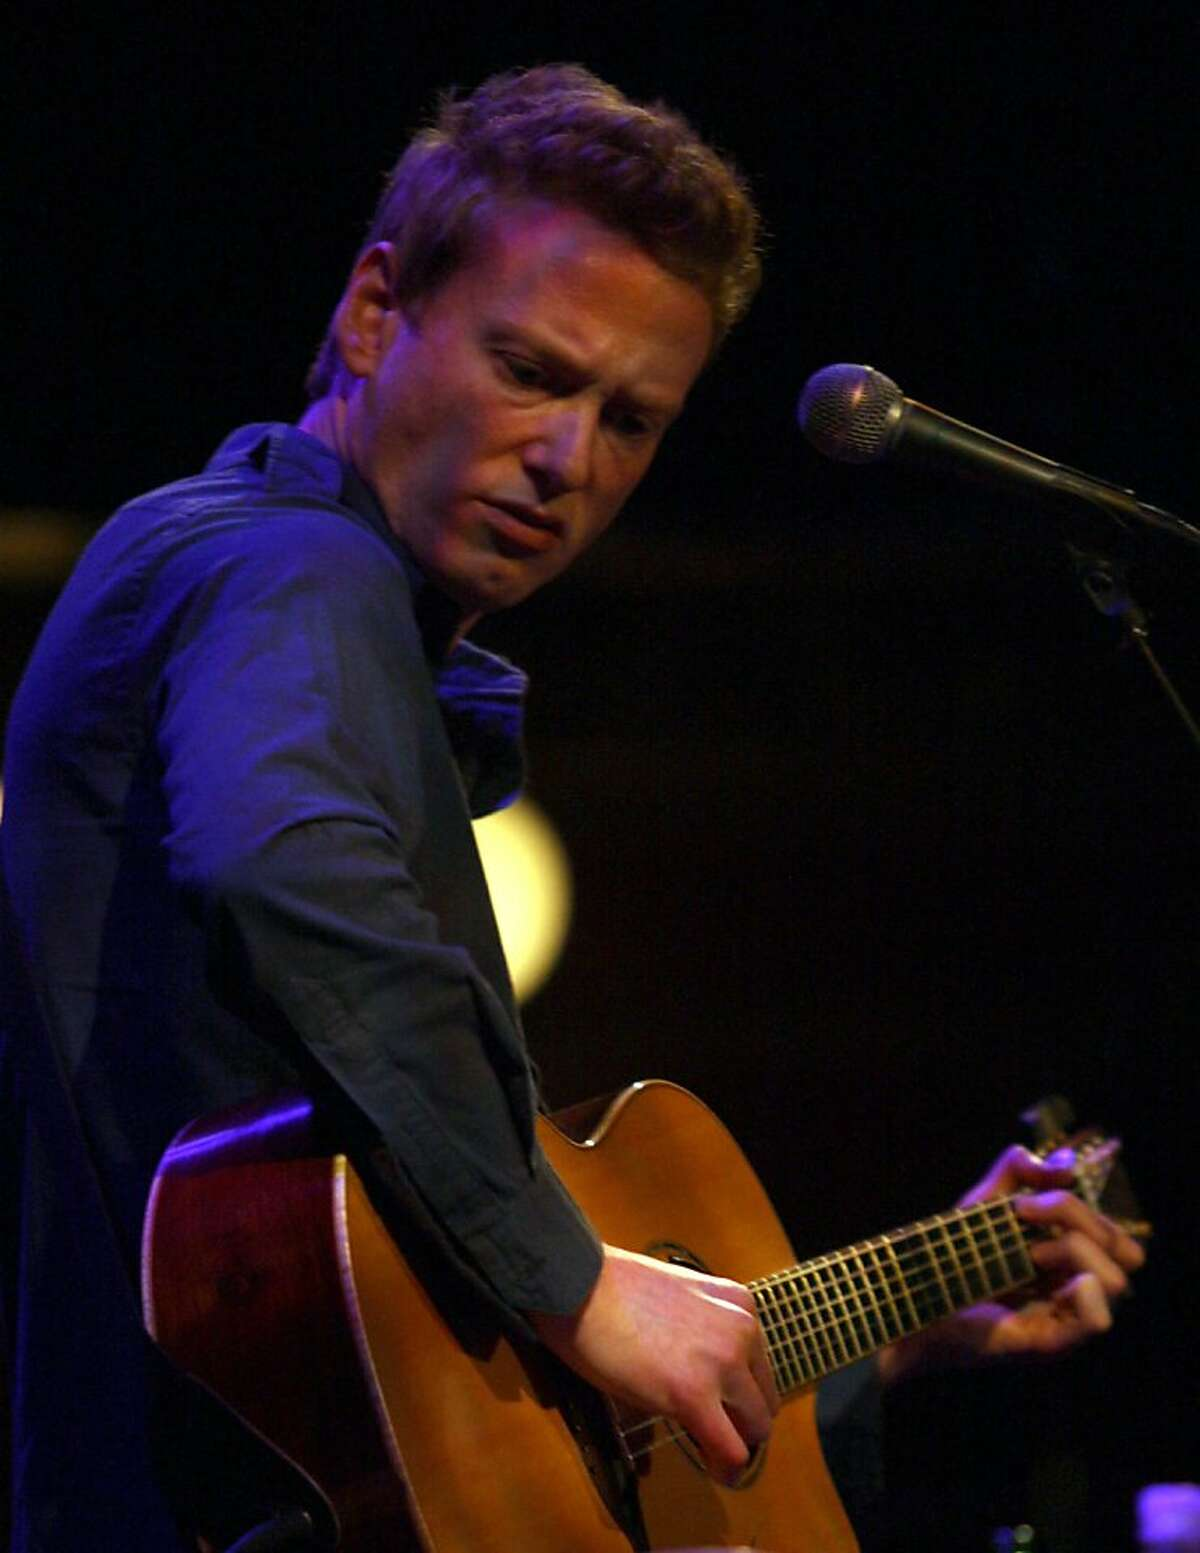 Teddy Thompson at the Great American Music Hall in San Francisco, Calif., on Thursday, April 9, 2009.